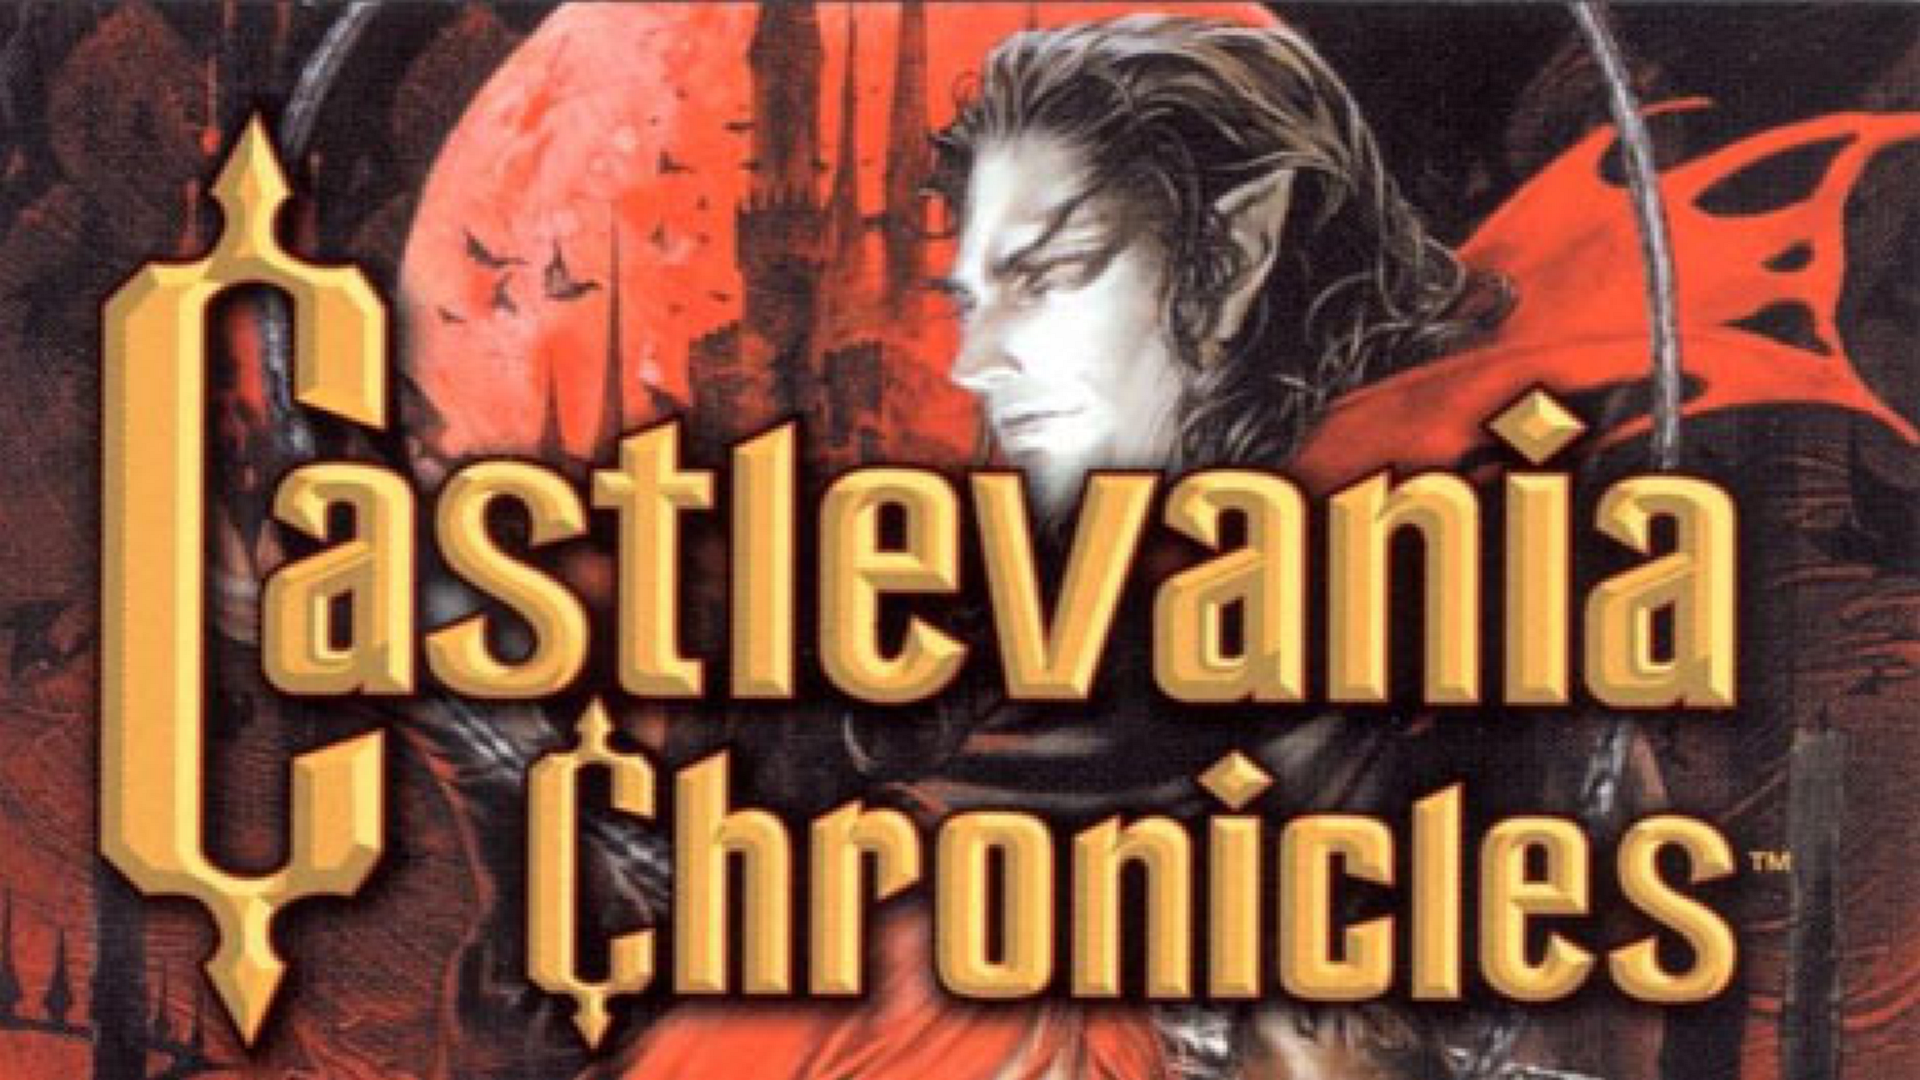 Castlevania Chronicles Logo